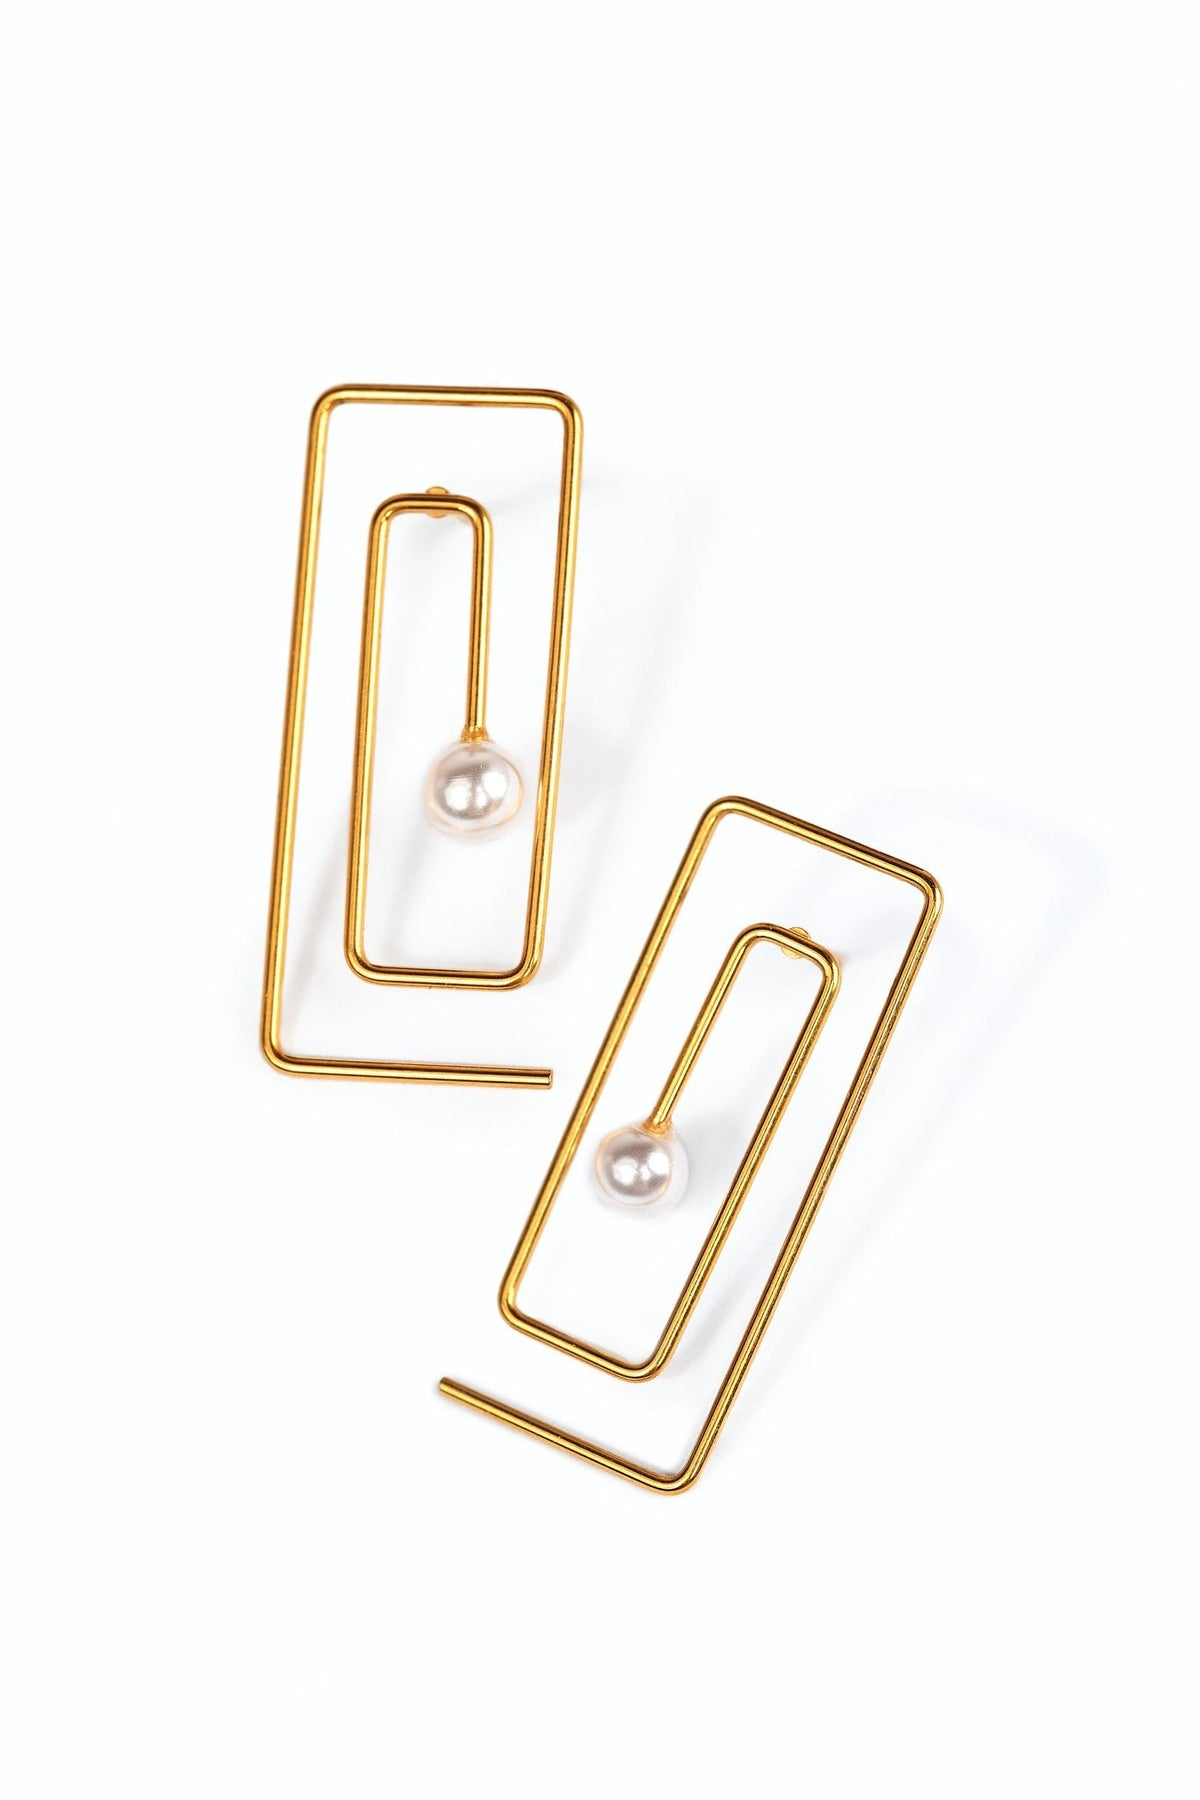 Gold Colored Earring in Maze Design with Tiny Pearl in the Middle | J.ING women's accessories